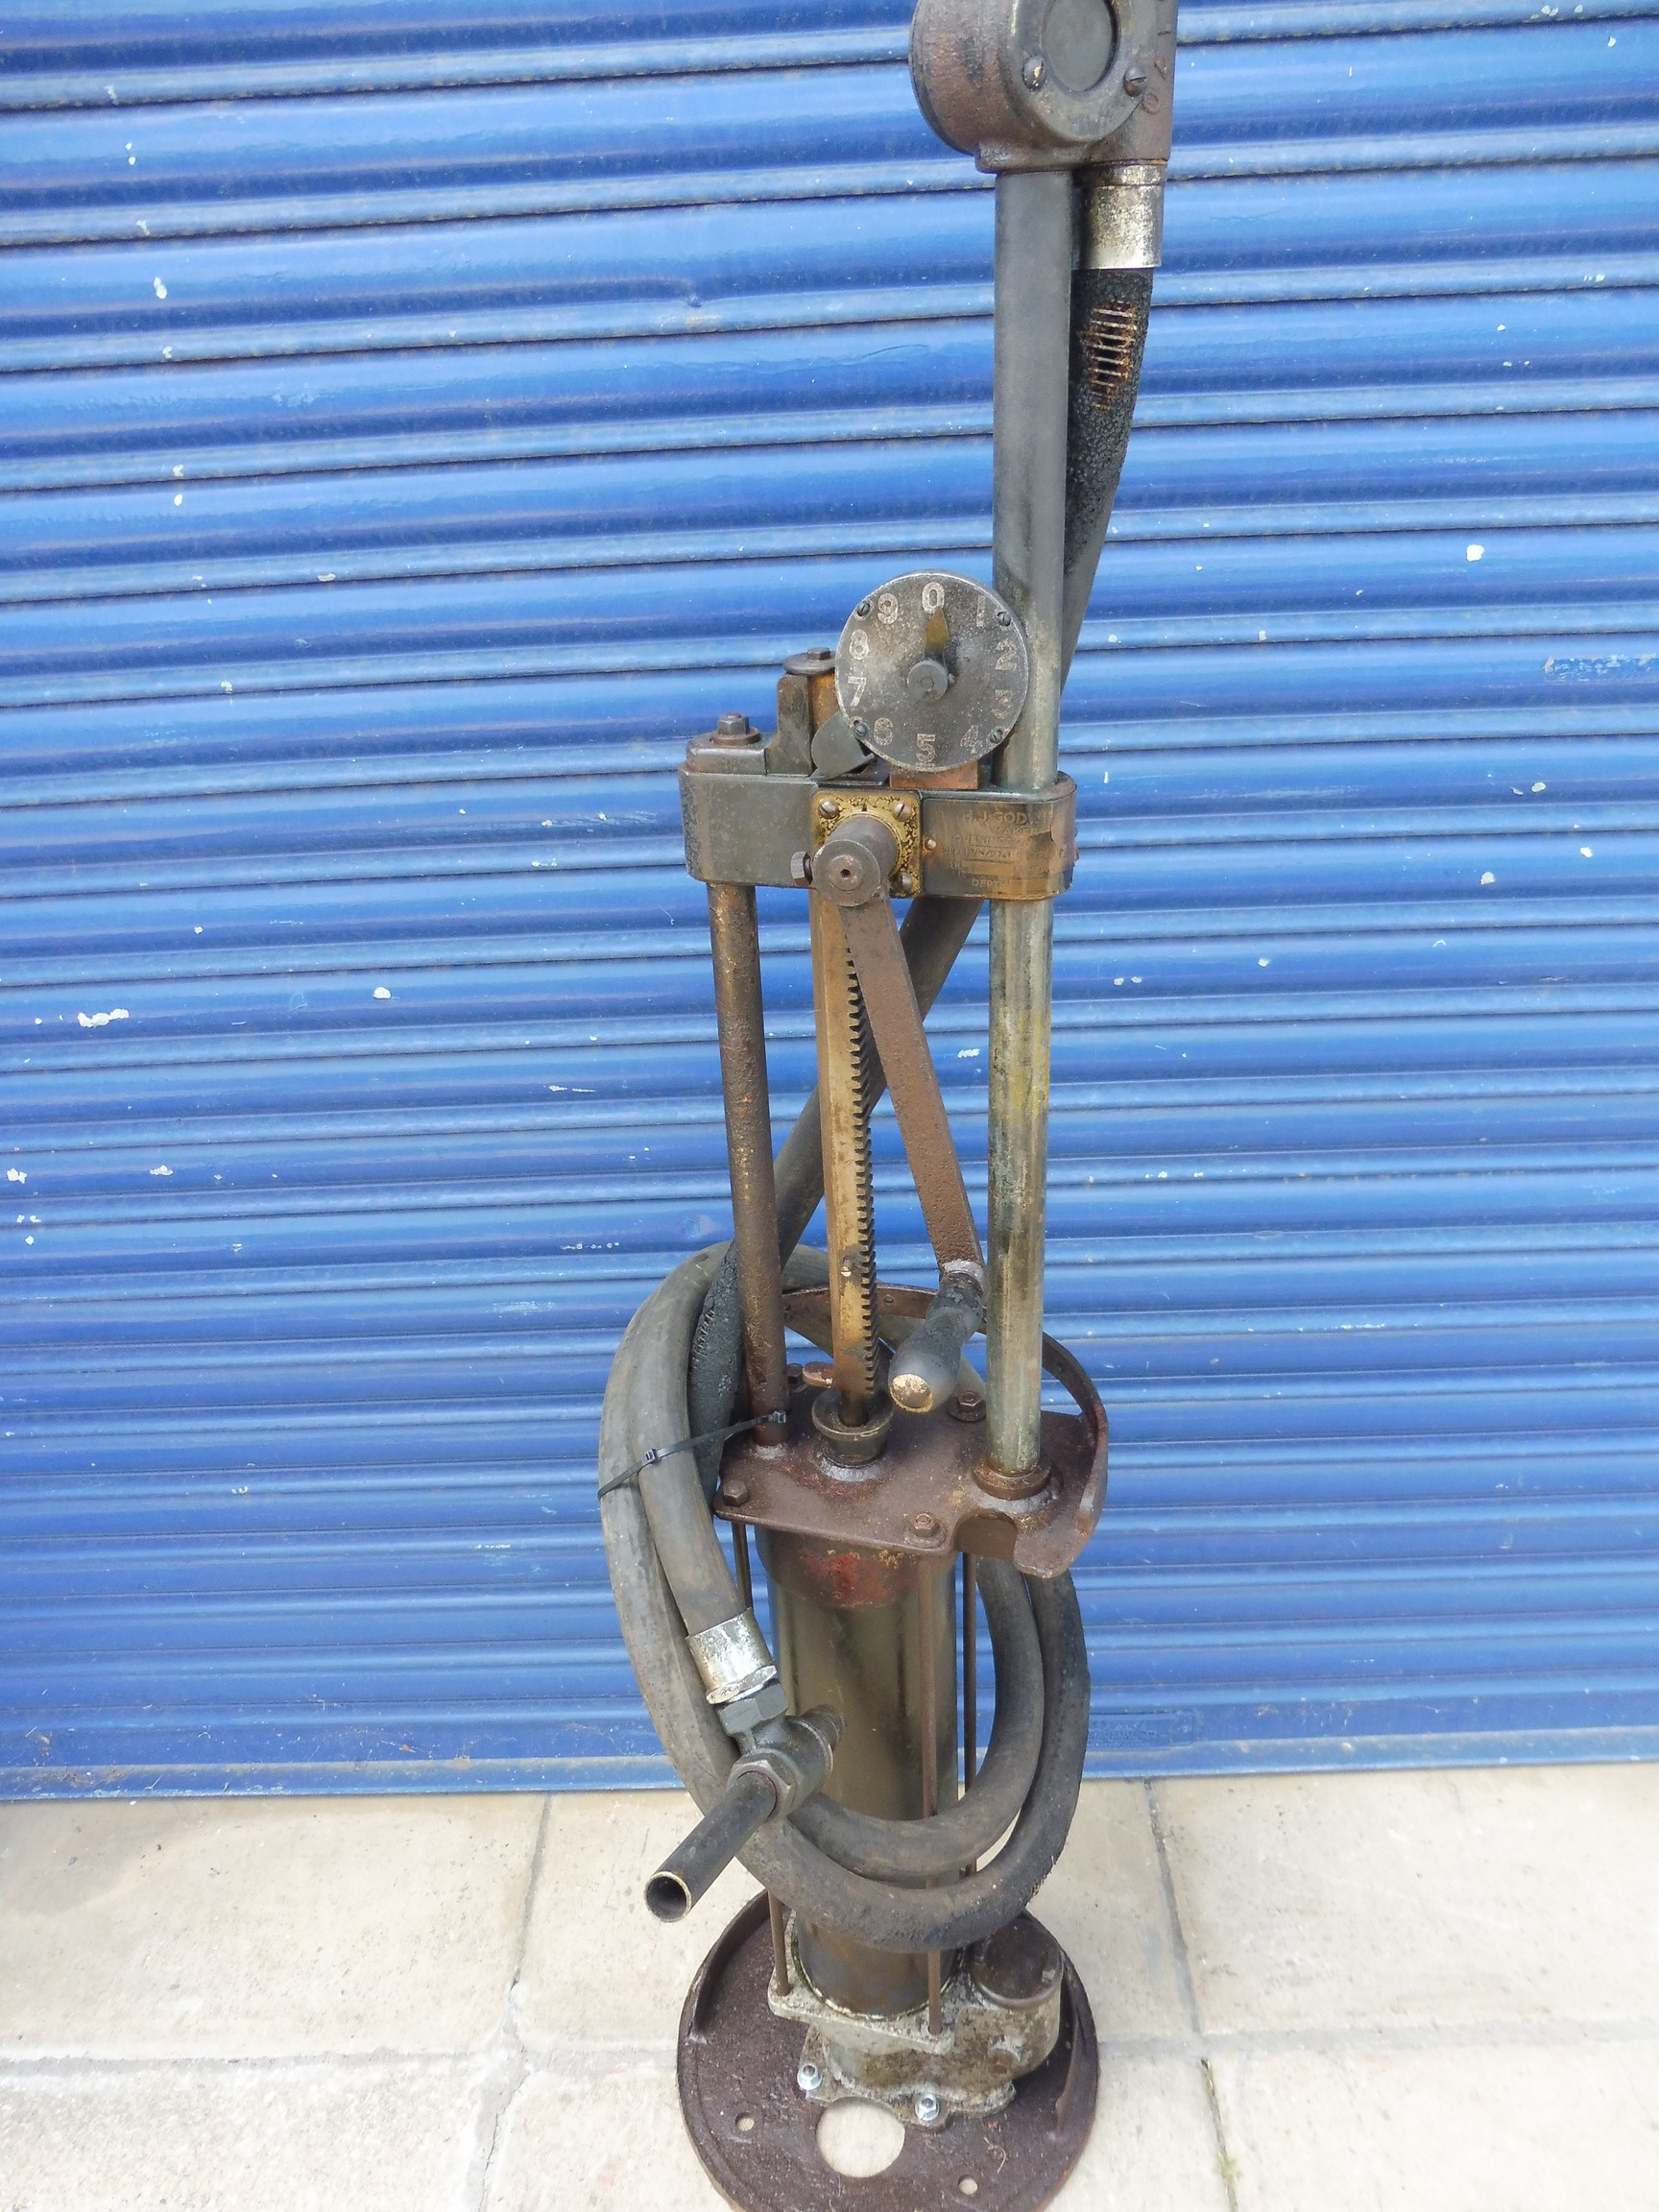 A Godwin hand-operated petrol pump with rubber hose and bronze nozzle. - Image 4 of 4